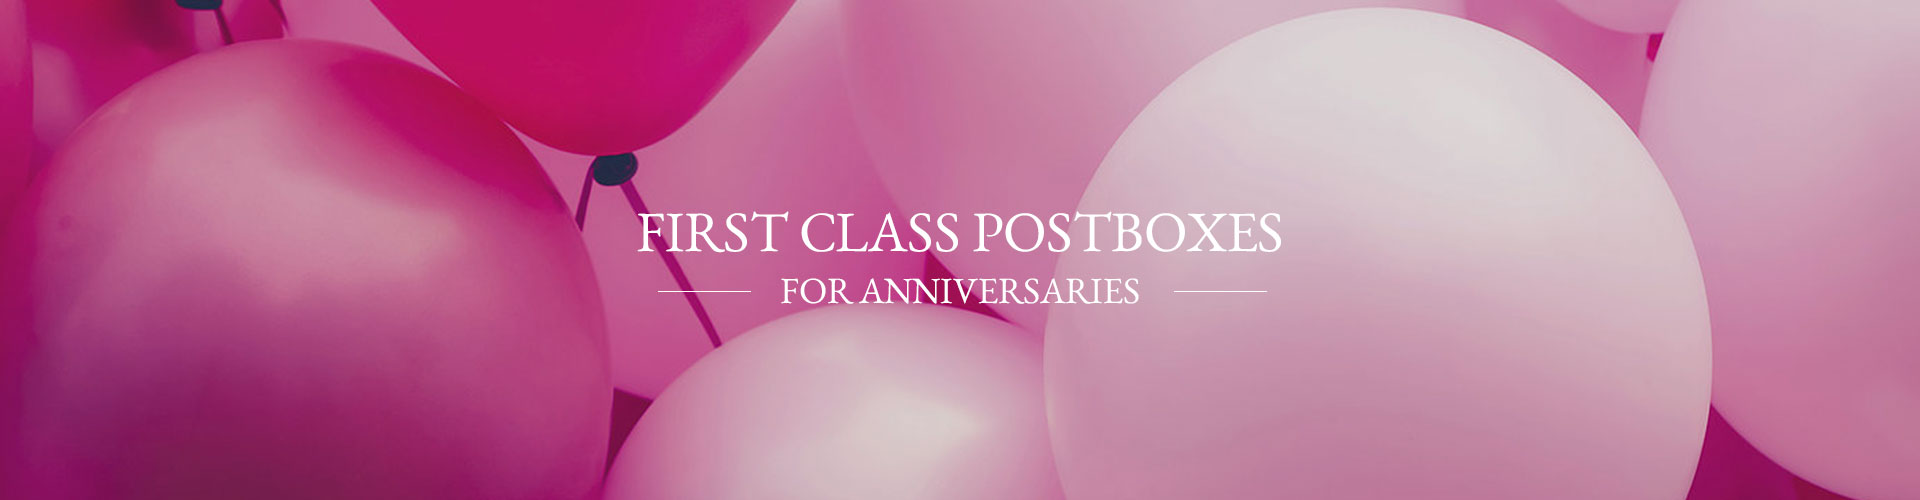 First Class Postboxes for Anniversaries